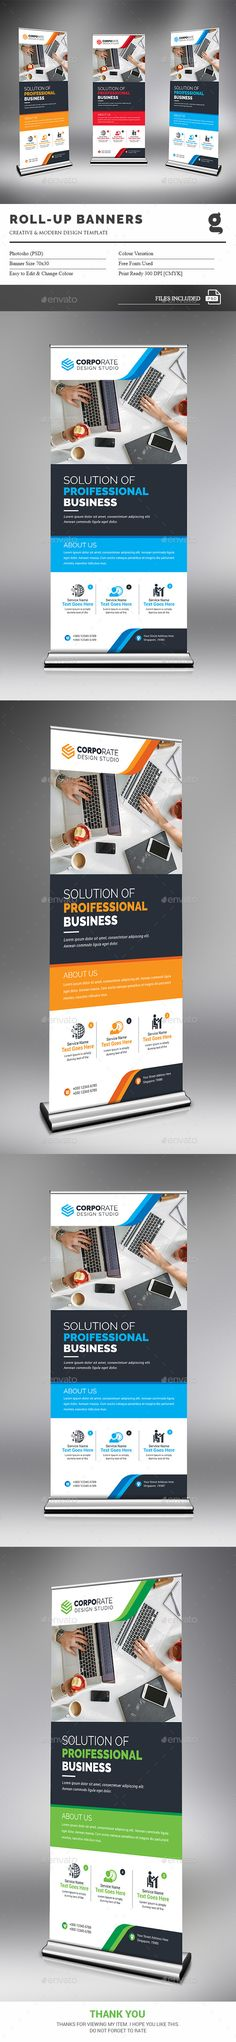 Rollup Banner Template PSD. Download here: https://graphicriver.net/item/rollup-banner/17376456?ref=ksioks